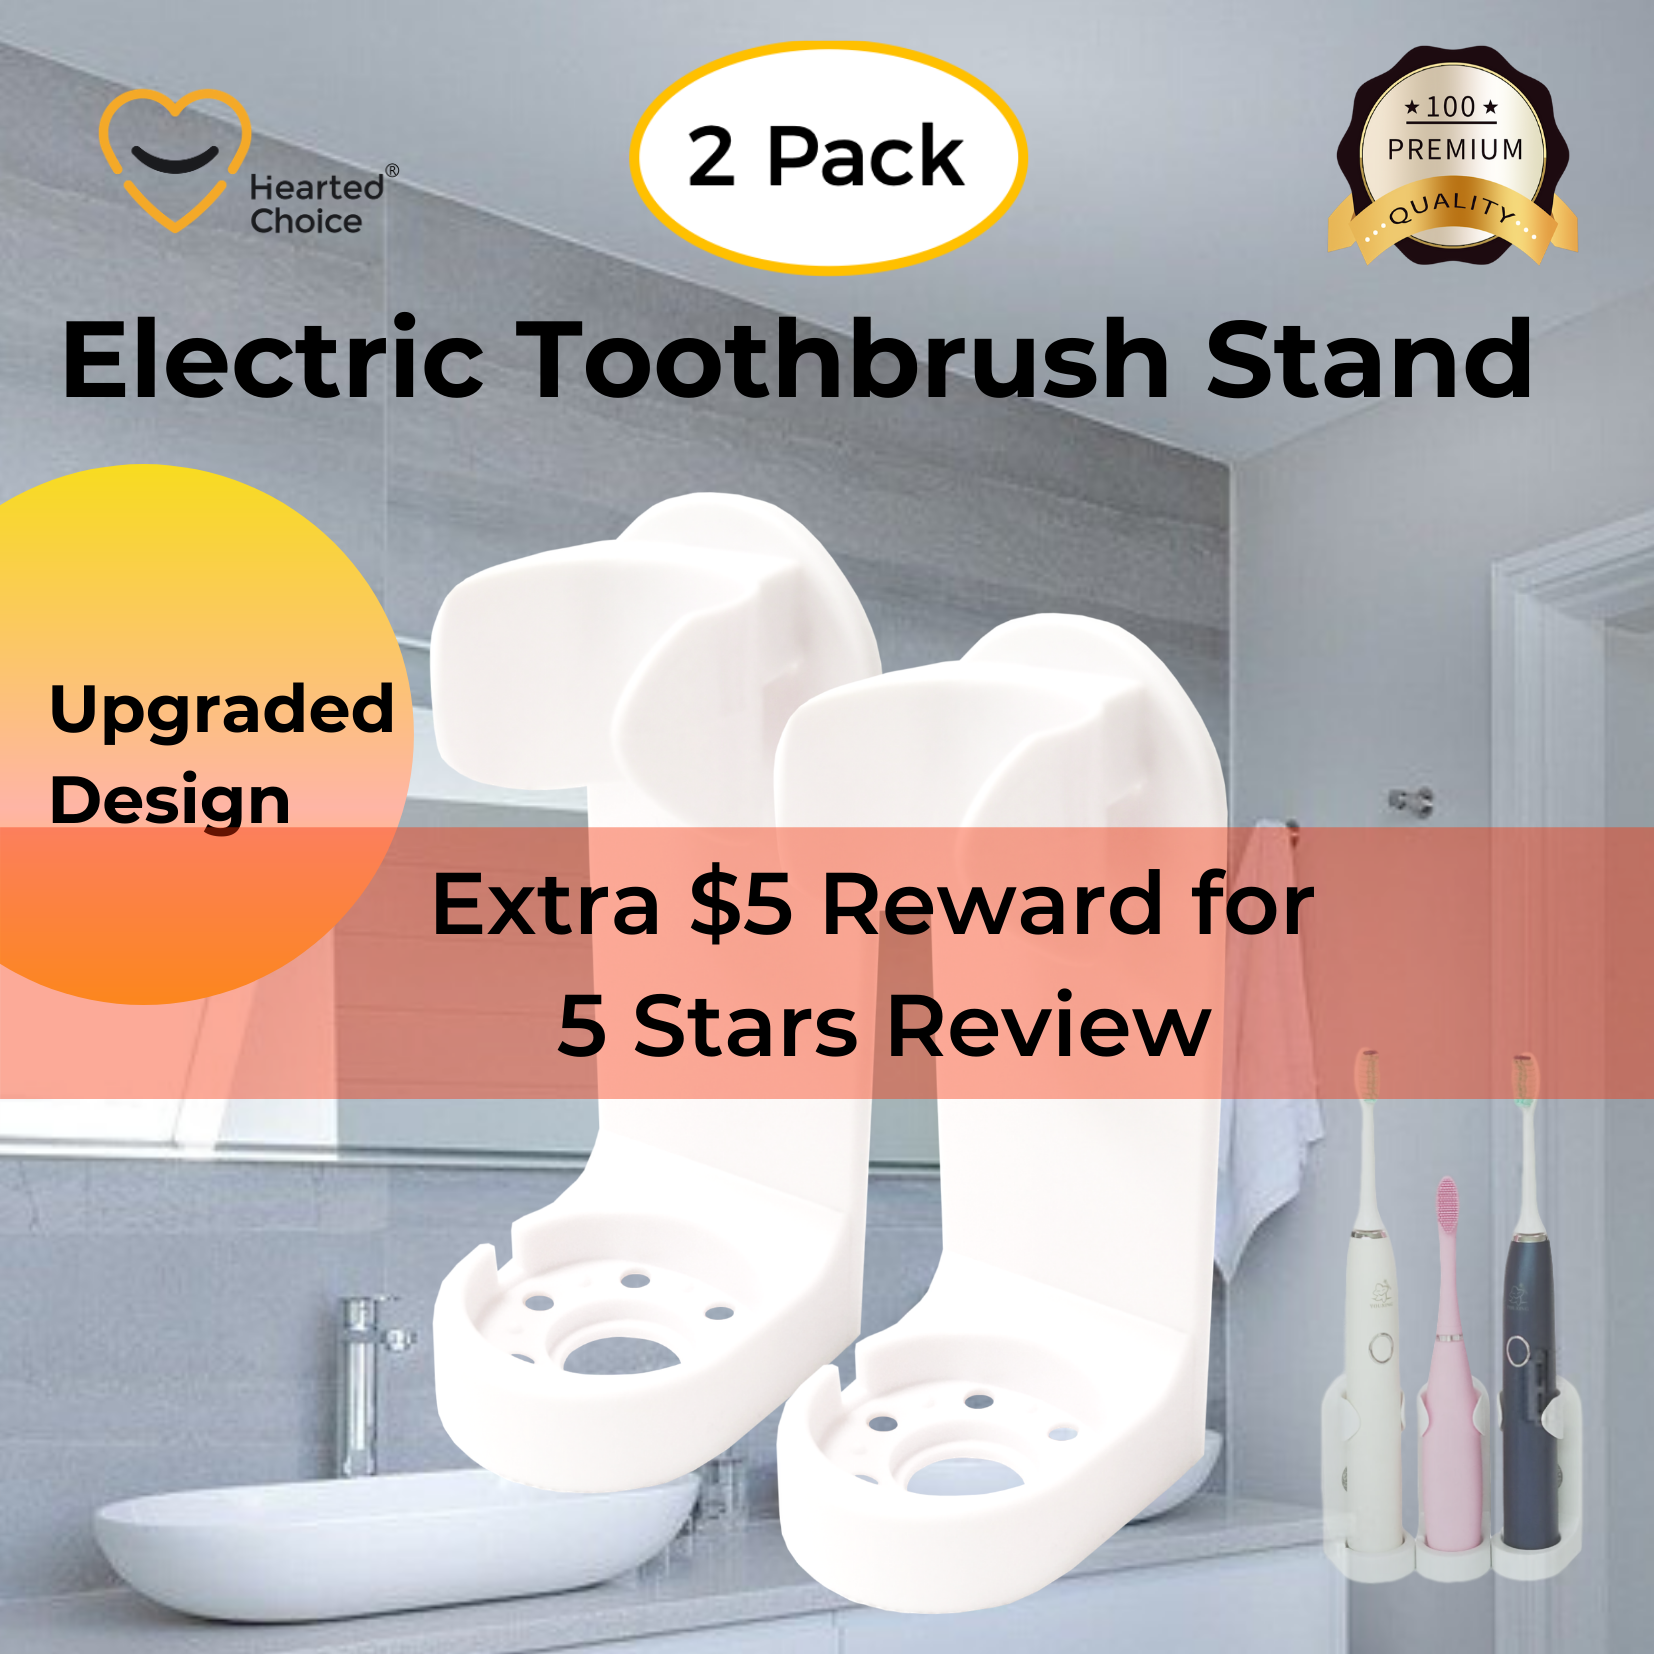 Extra $ Reward Electric Toothbrush Holder, Wall Mount, Hearted Choice Electric Toothbrush Base 2 Pack, Ivory